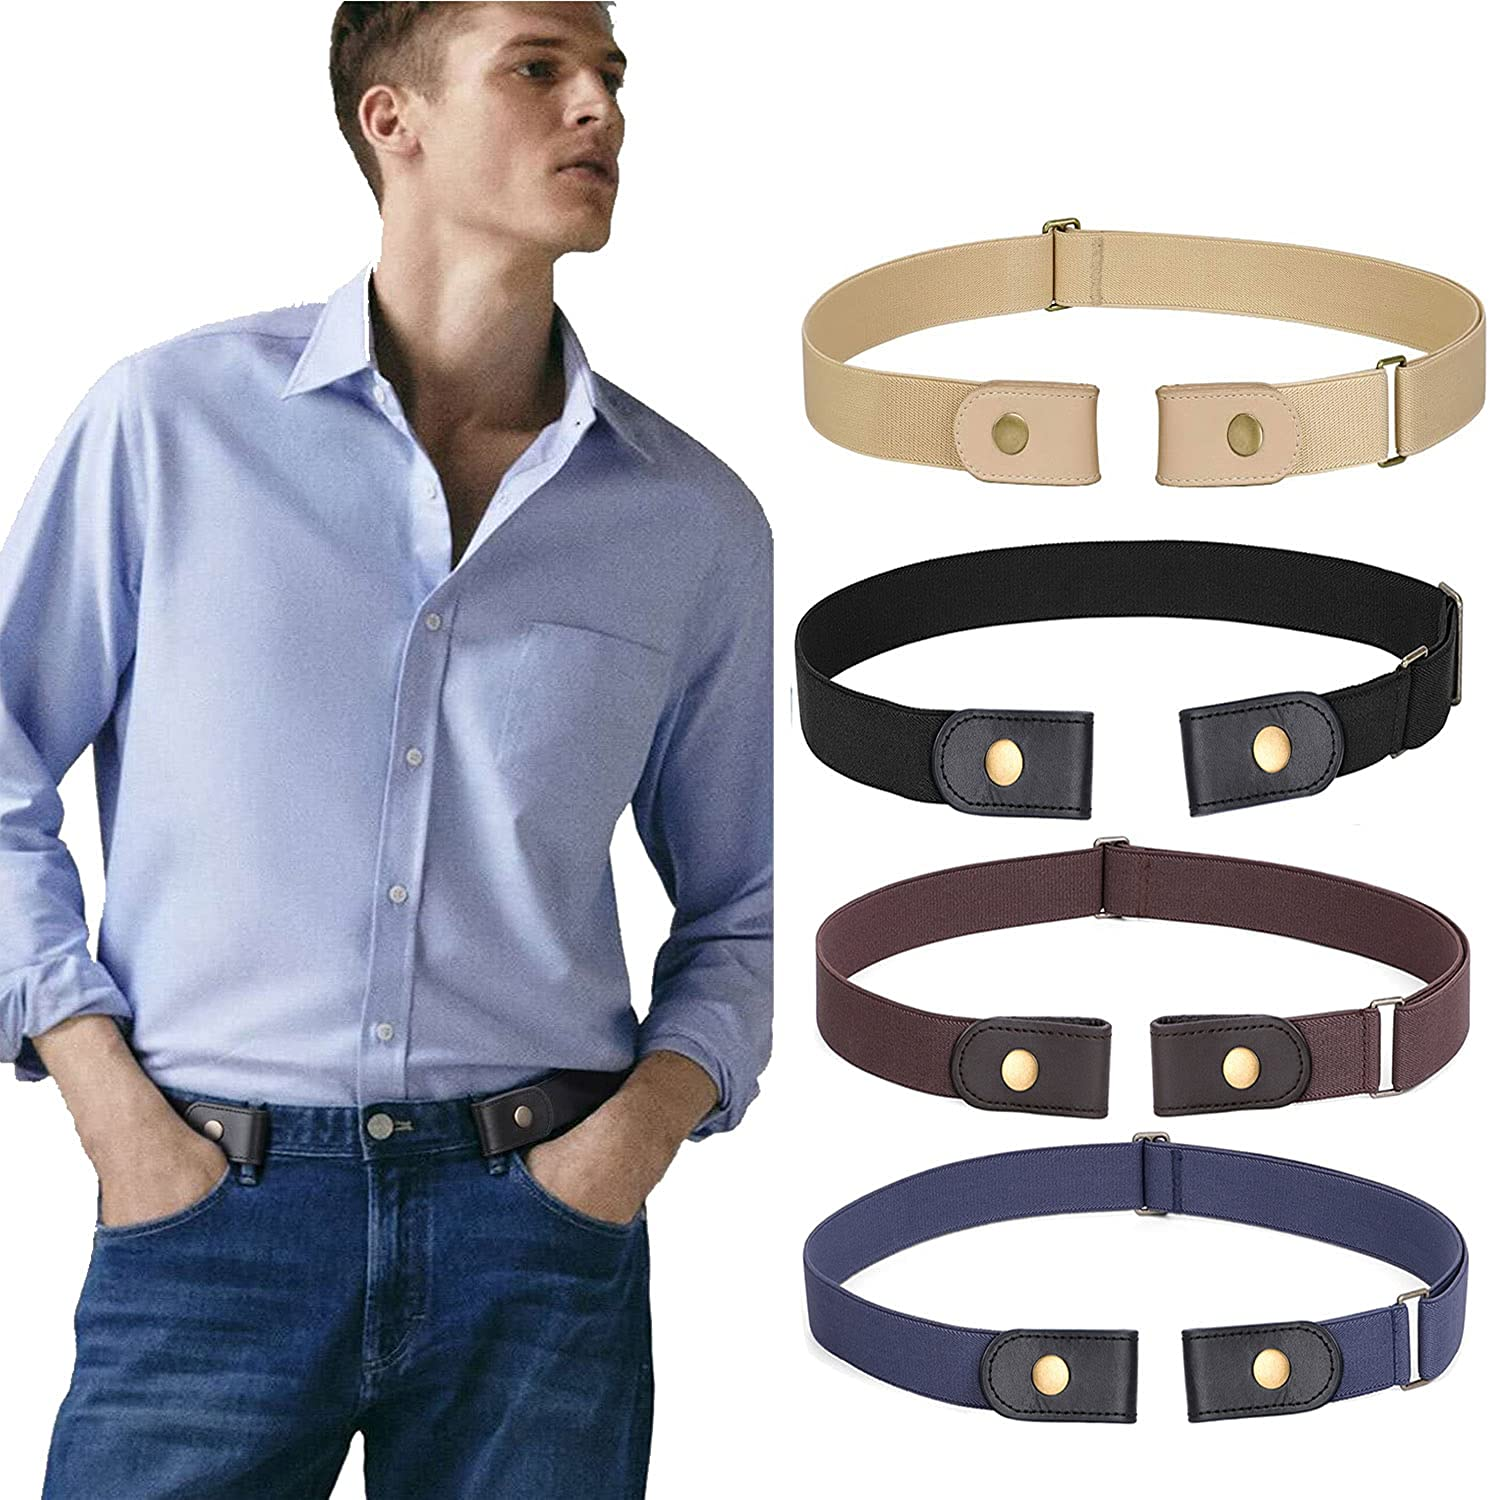 WERFORU 4 Pack Men No Buckle Show Belt Buckle Free Stretch Belt for Jeans Pants 1.38 Inches Wide